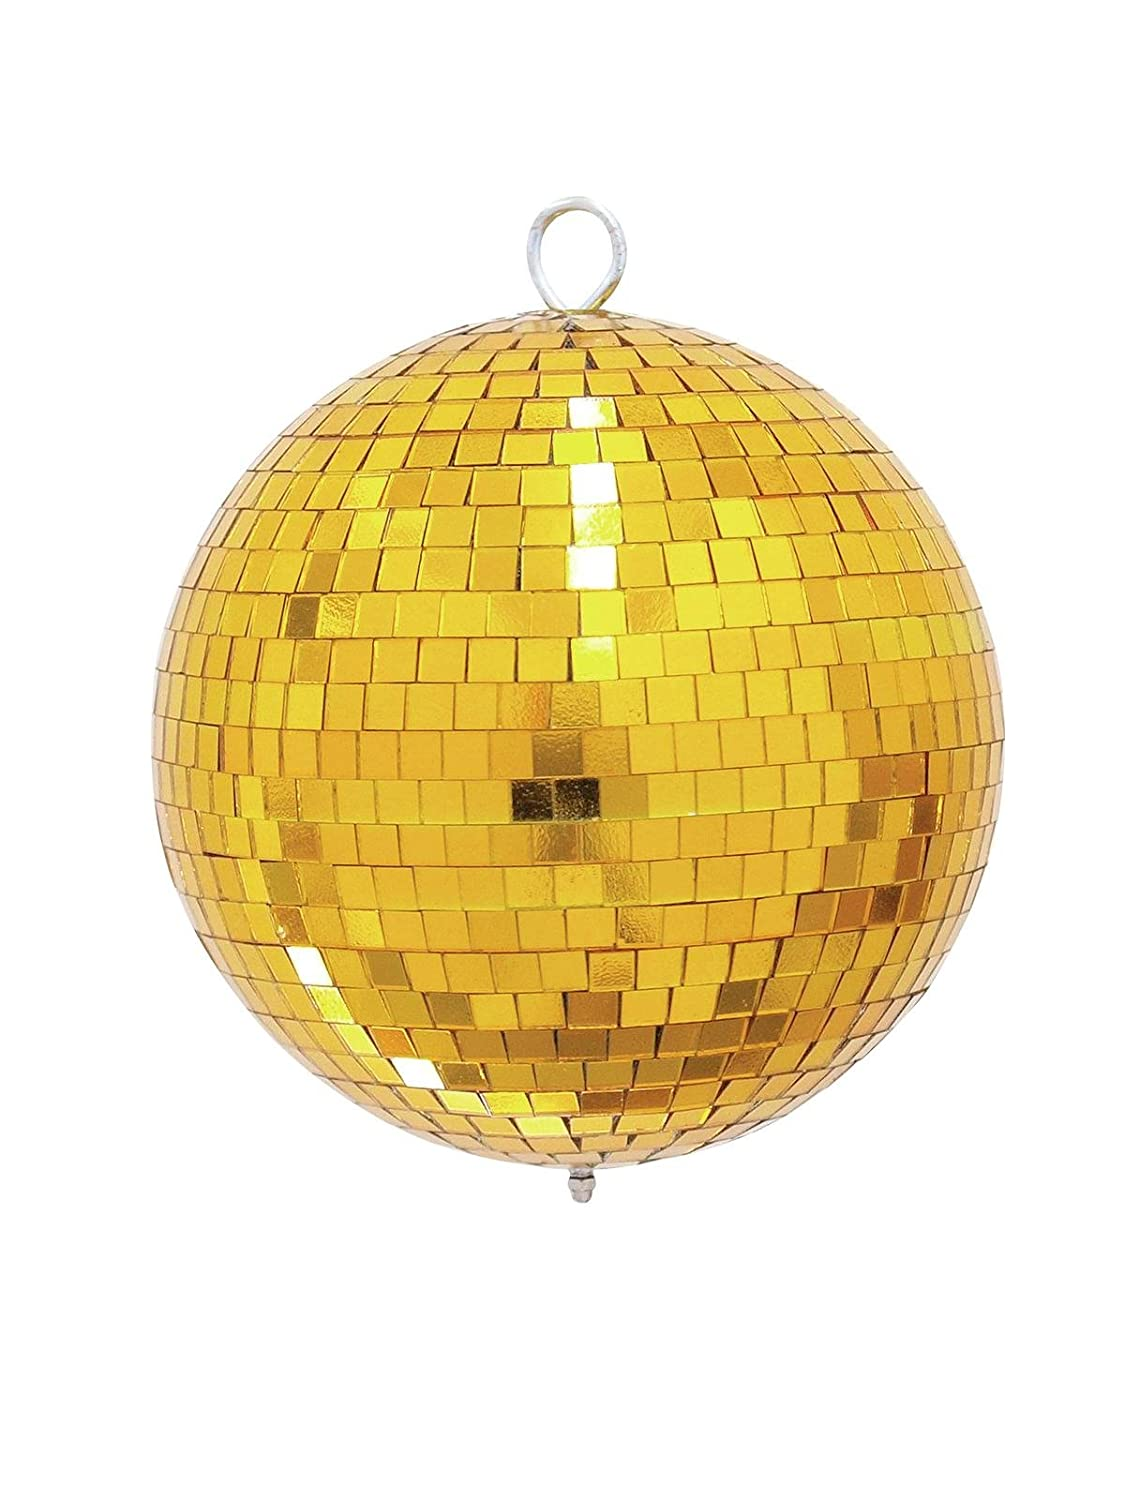 Disco Ball GOLDIE with Genuine Glass Facets, Ø 20cm, gold - Glitterball/For Ballroom - showking Ø 20cm 14874